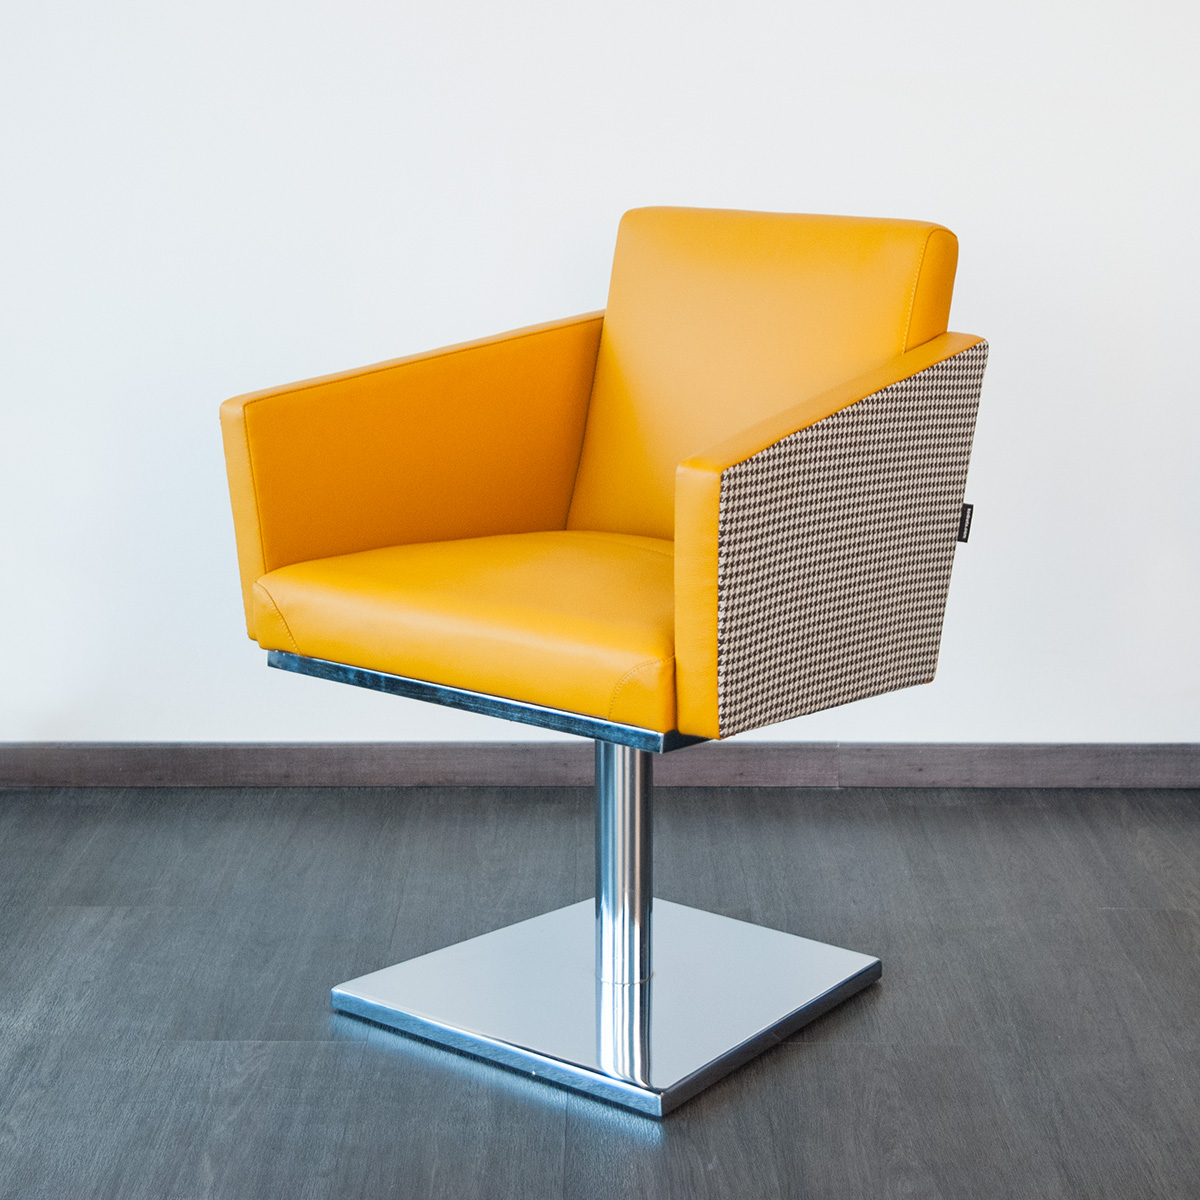 Retro Chair Jergy Is A Comfortable Chair With Design In